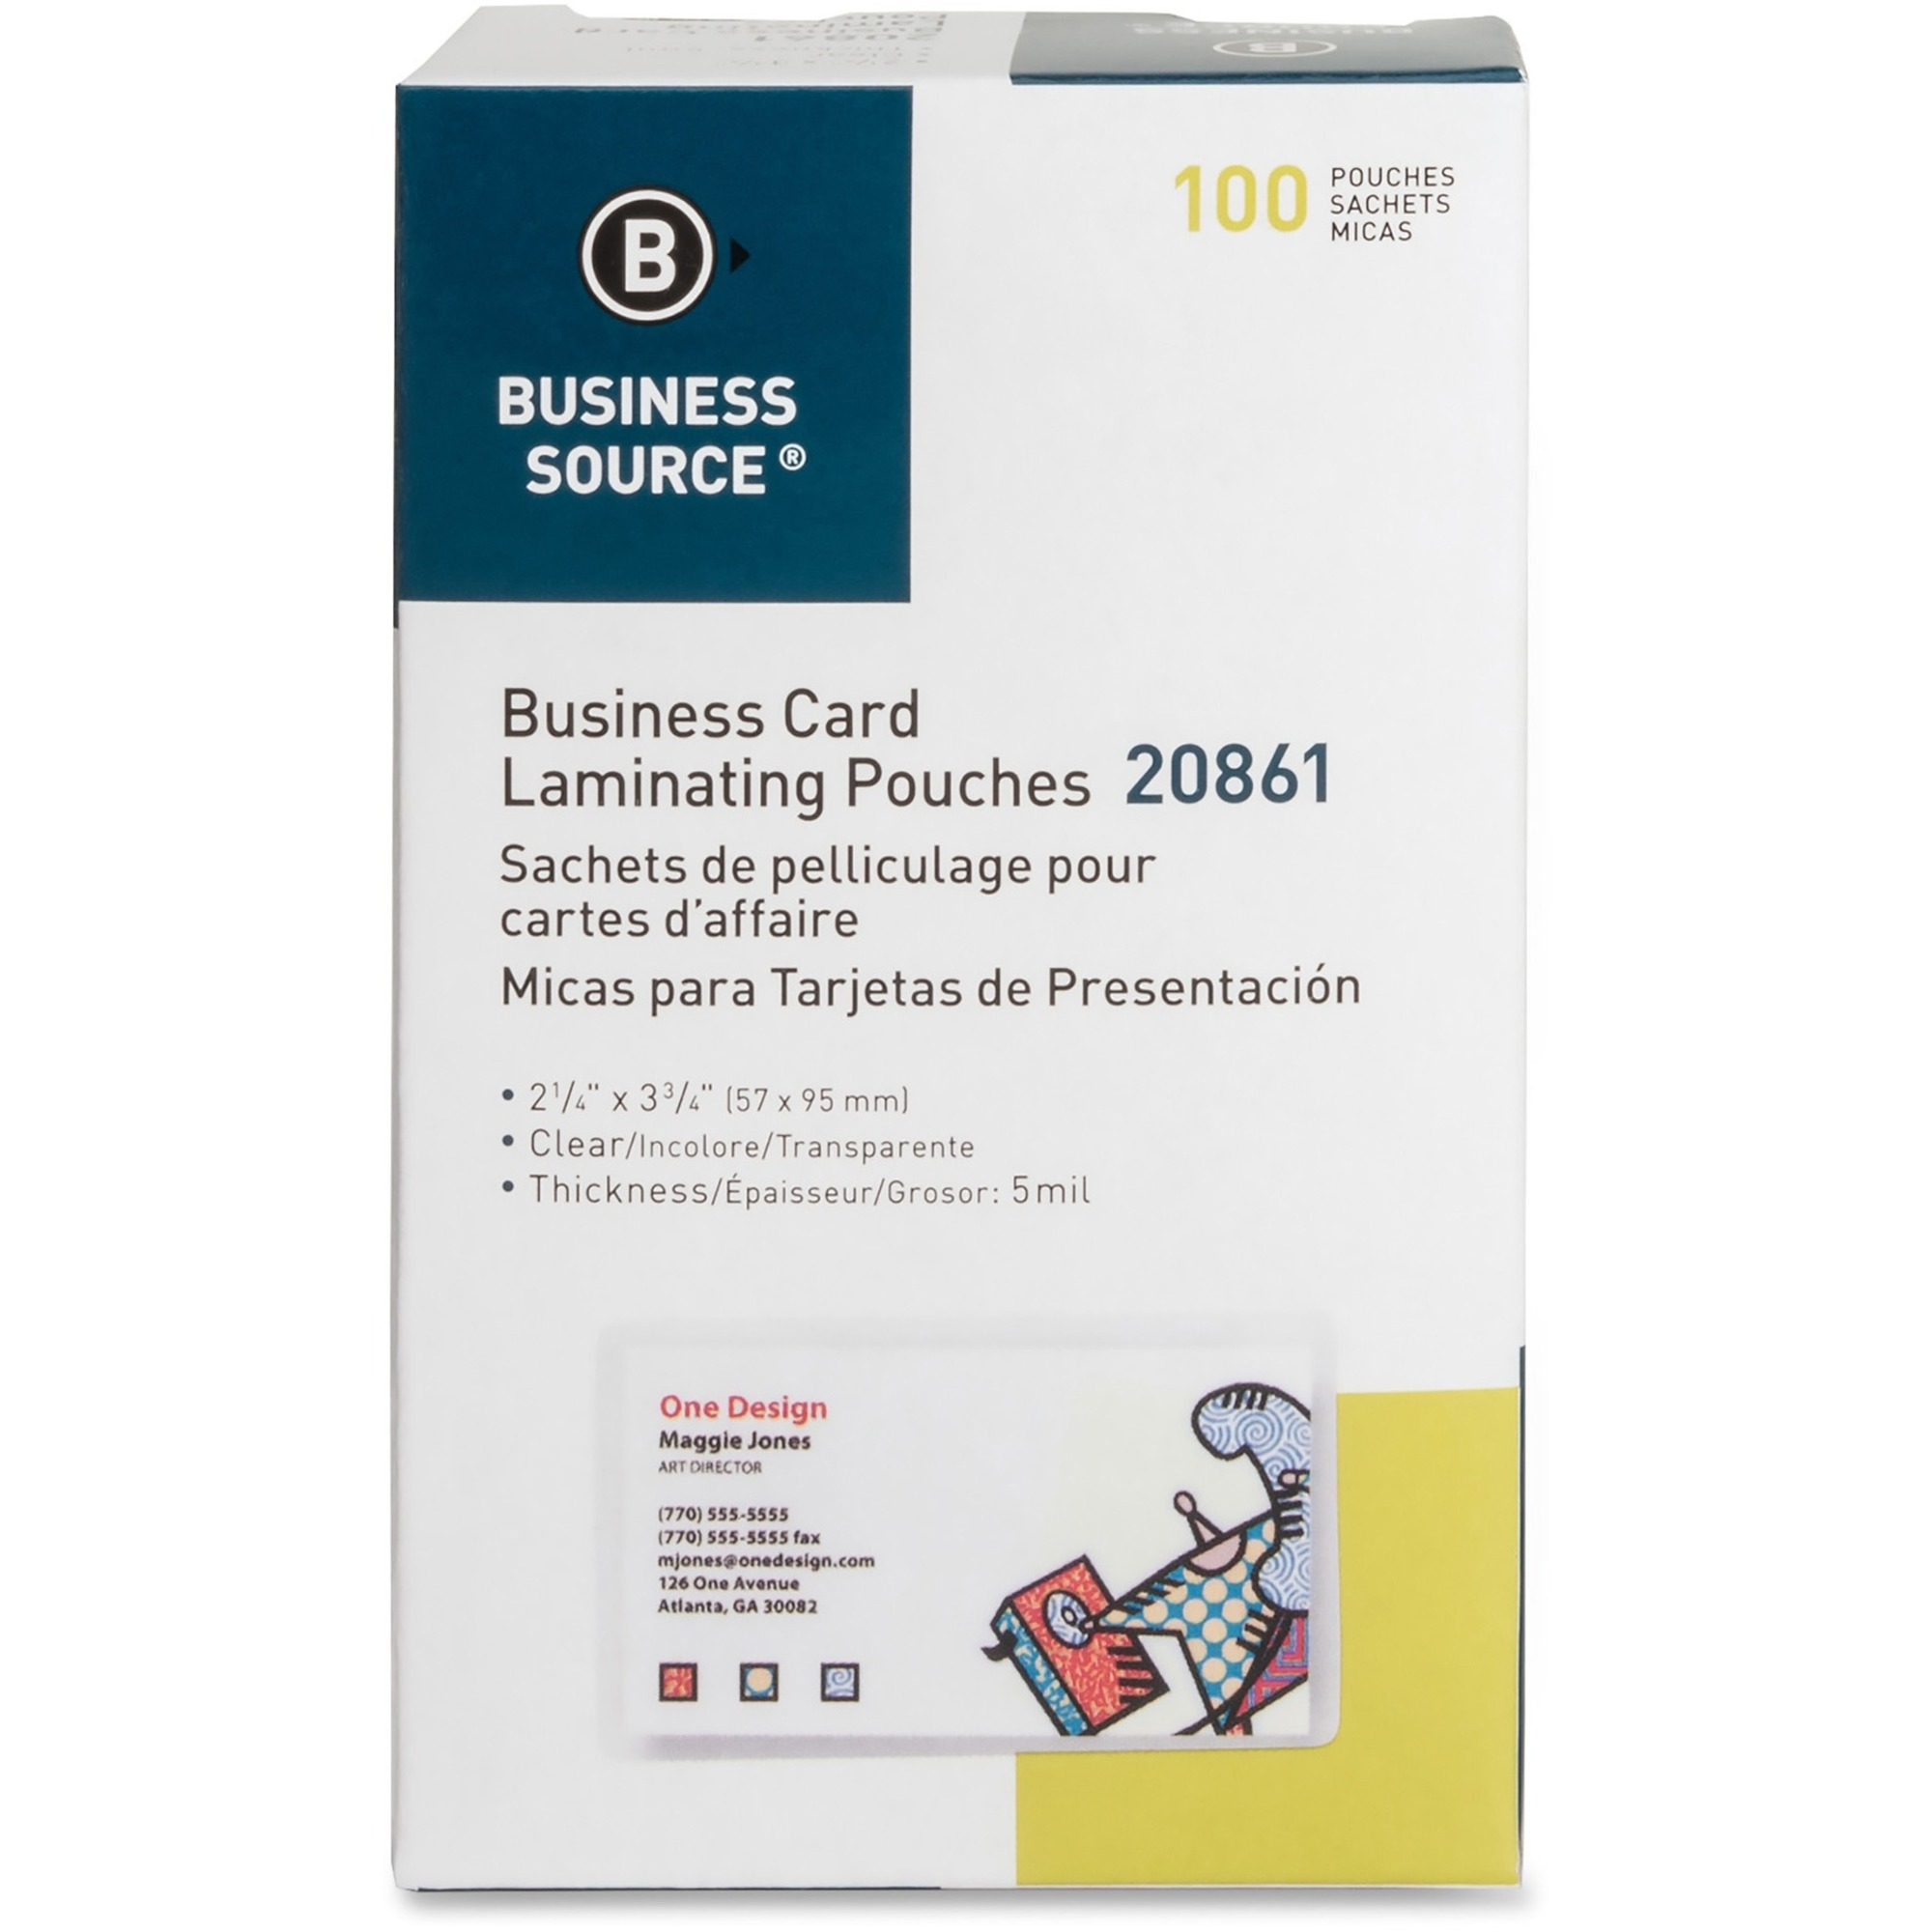 Kamloops office systems technology office machines business source 5 mil business card laminating pouches laminating pouchsheet size 225 width x 375 length x 5 mil thickness for business card reheart Choice Image